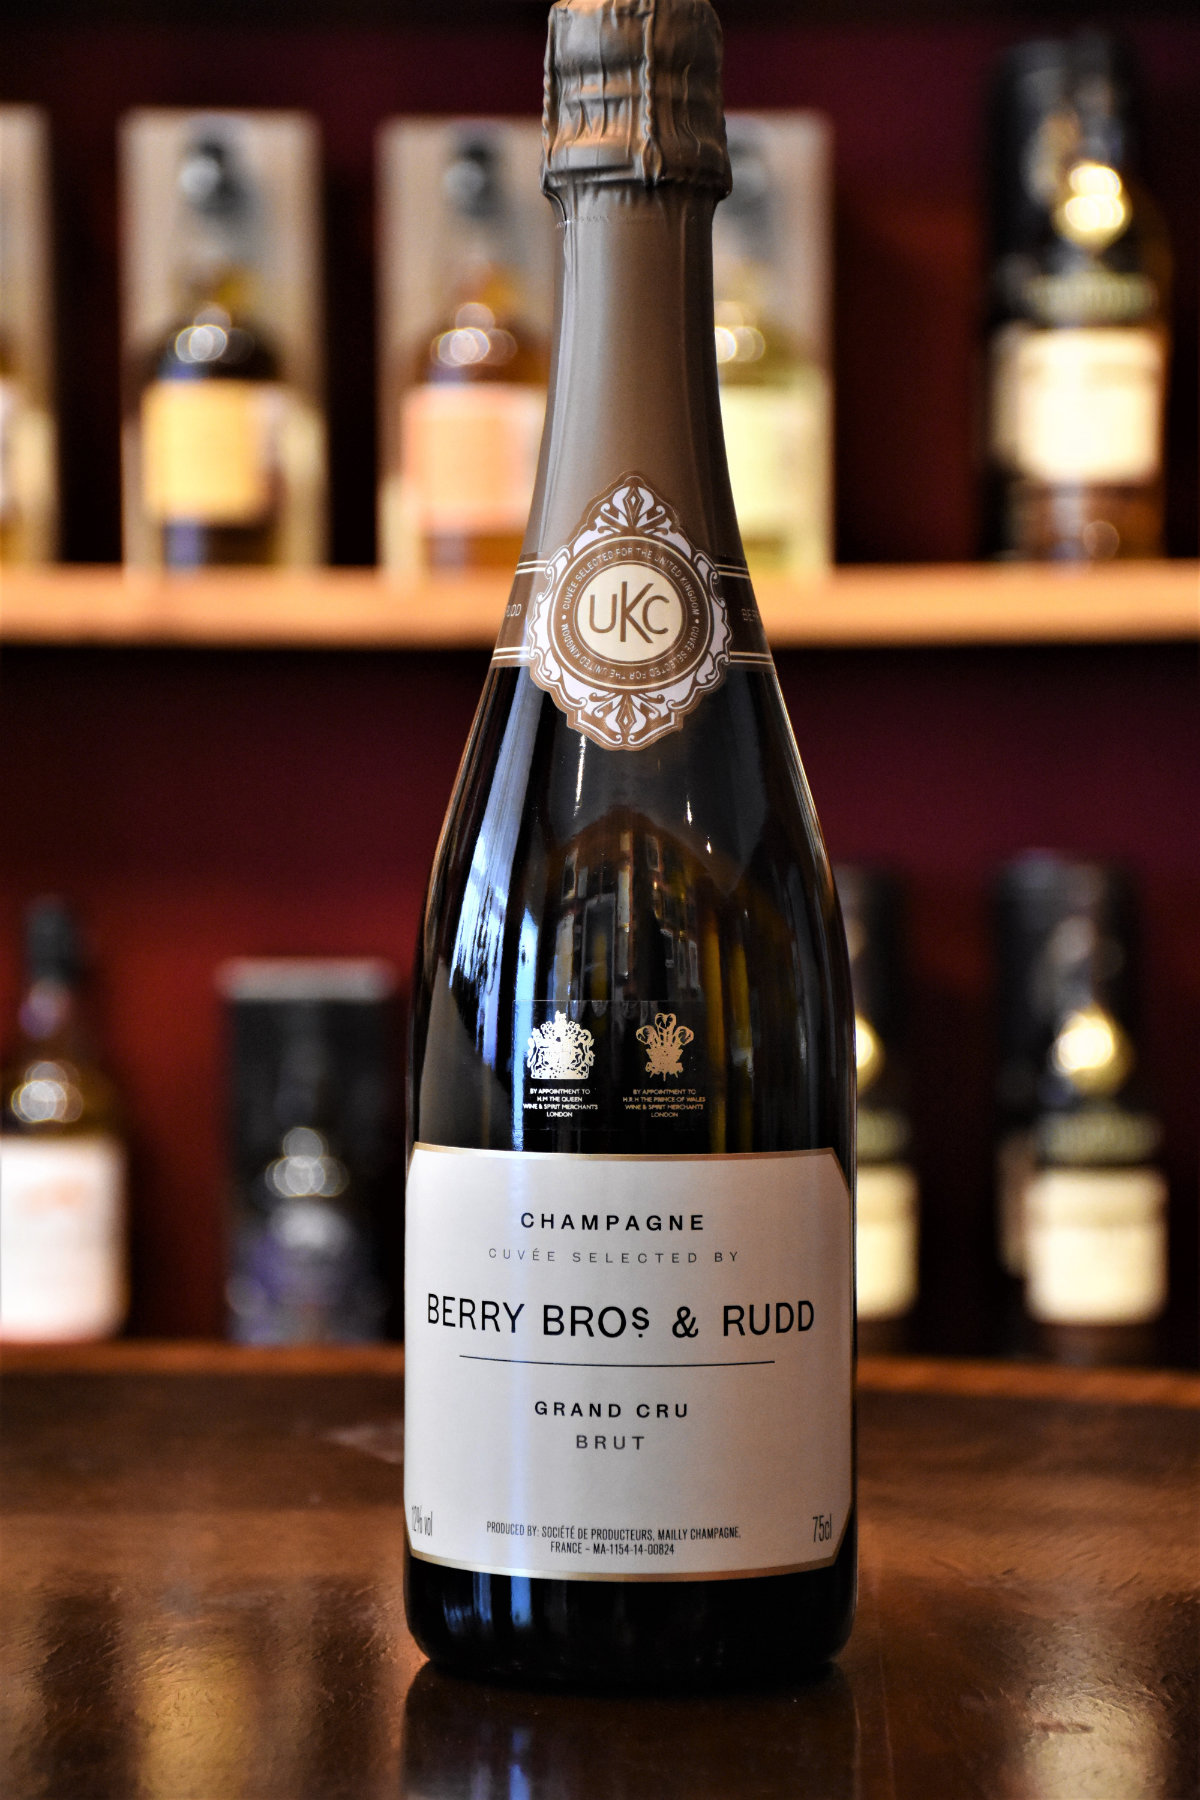 Berry Bros. & Rudd Champagne Grand Cru by Mailly, Grand Champagne, 12 % Alc.Vol.